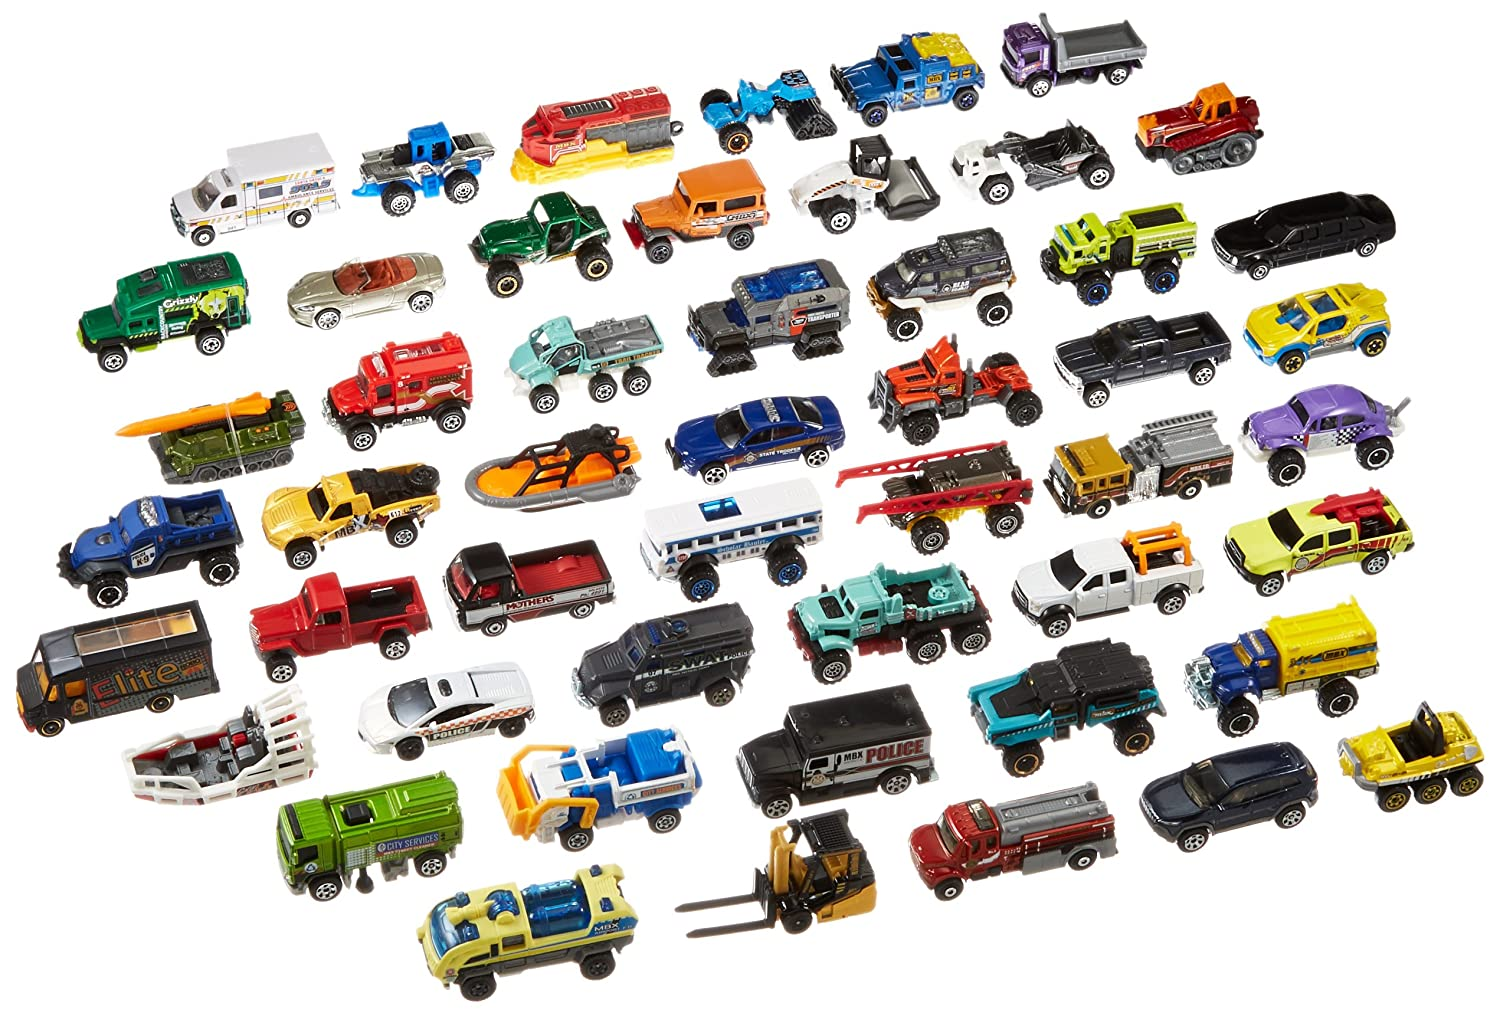 Amazon.com: Matchbox Diecast 50 Car Pack (1:64 Scale): Toys & Games